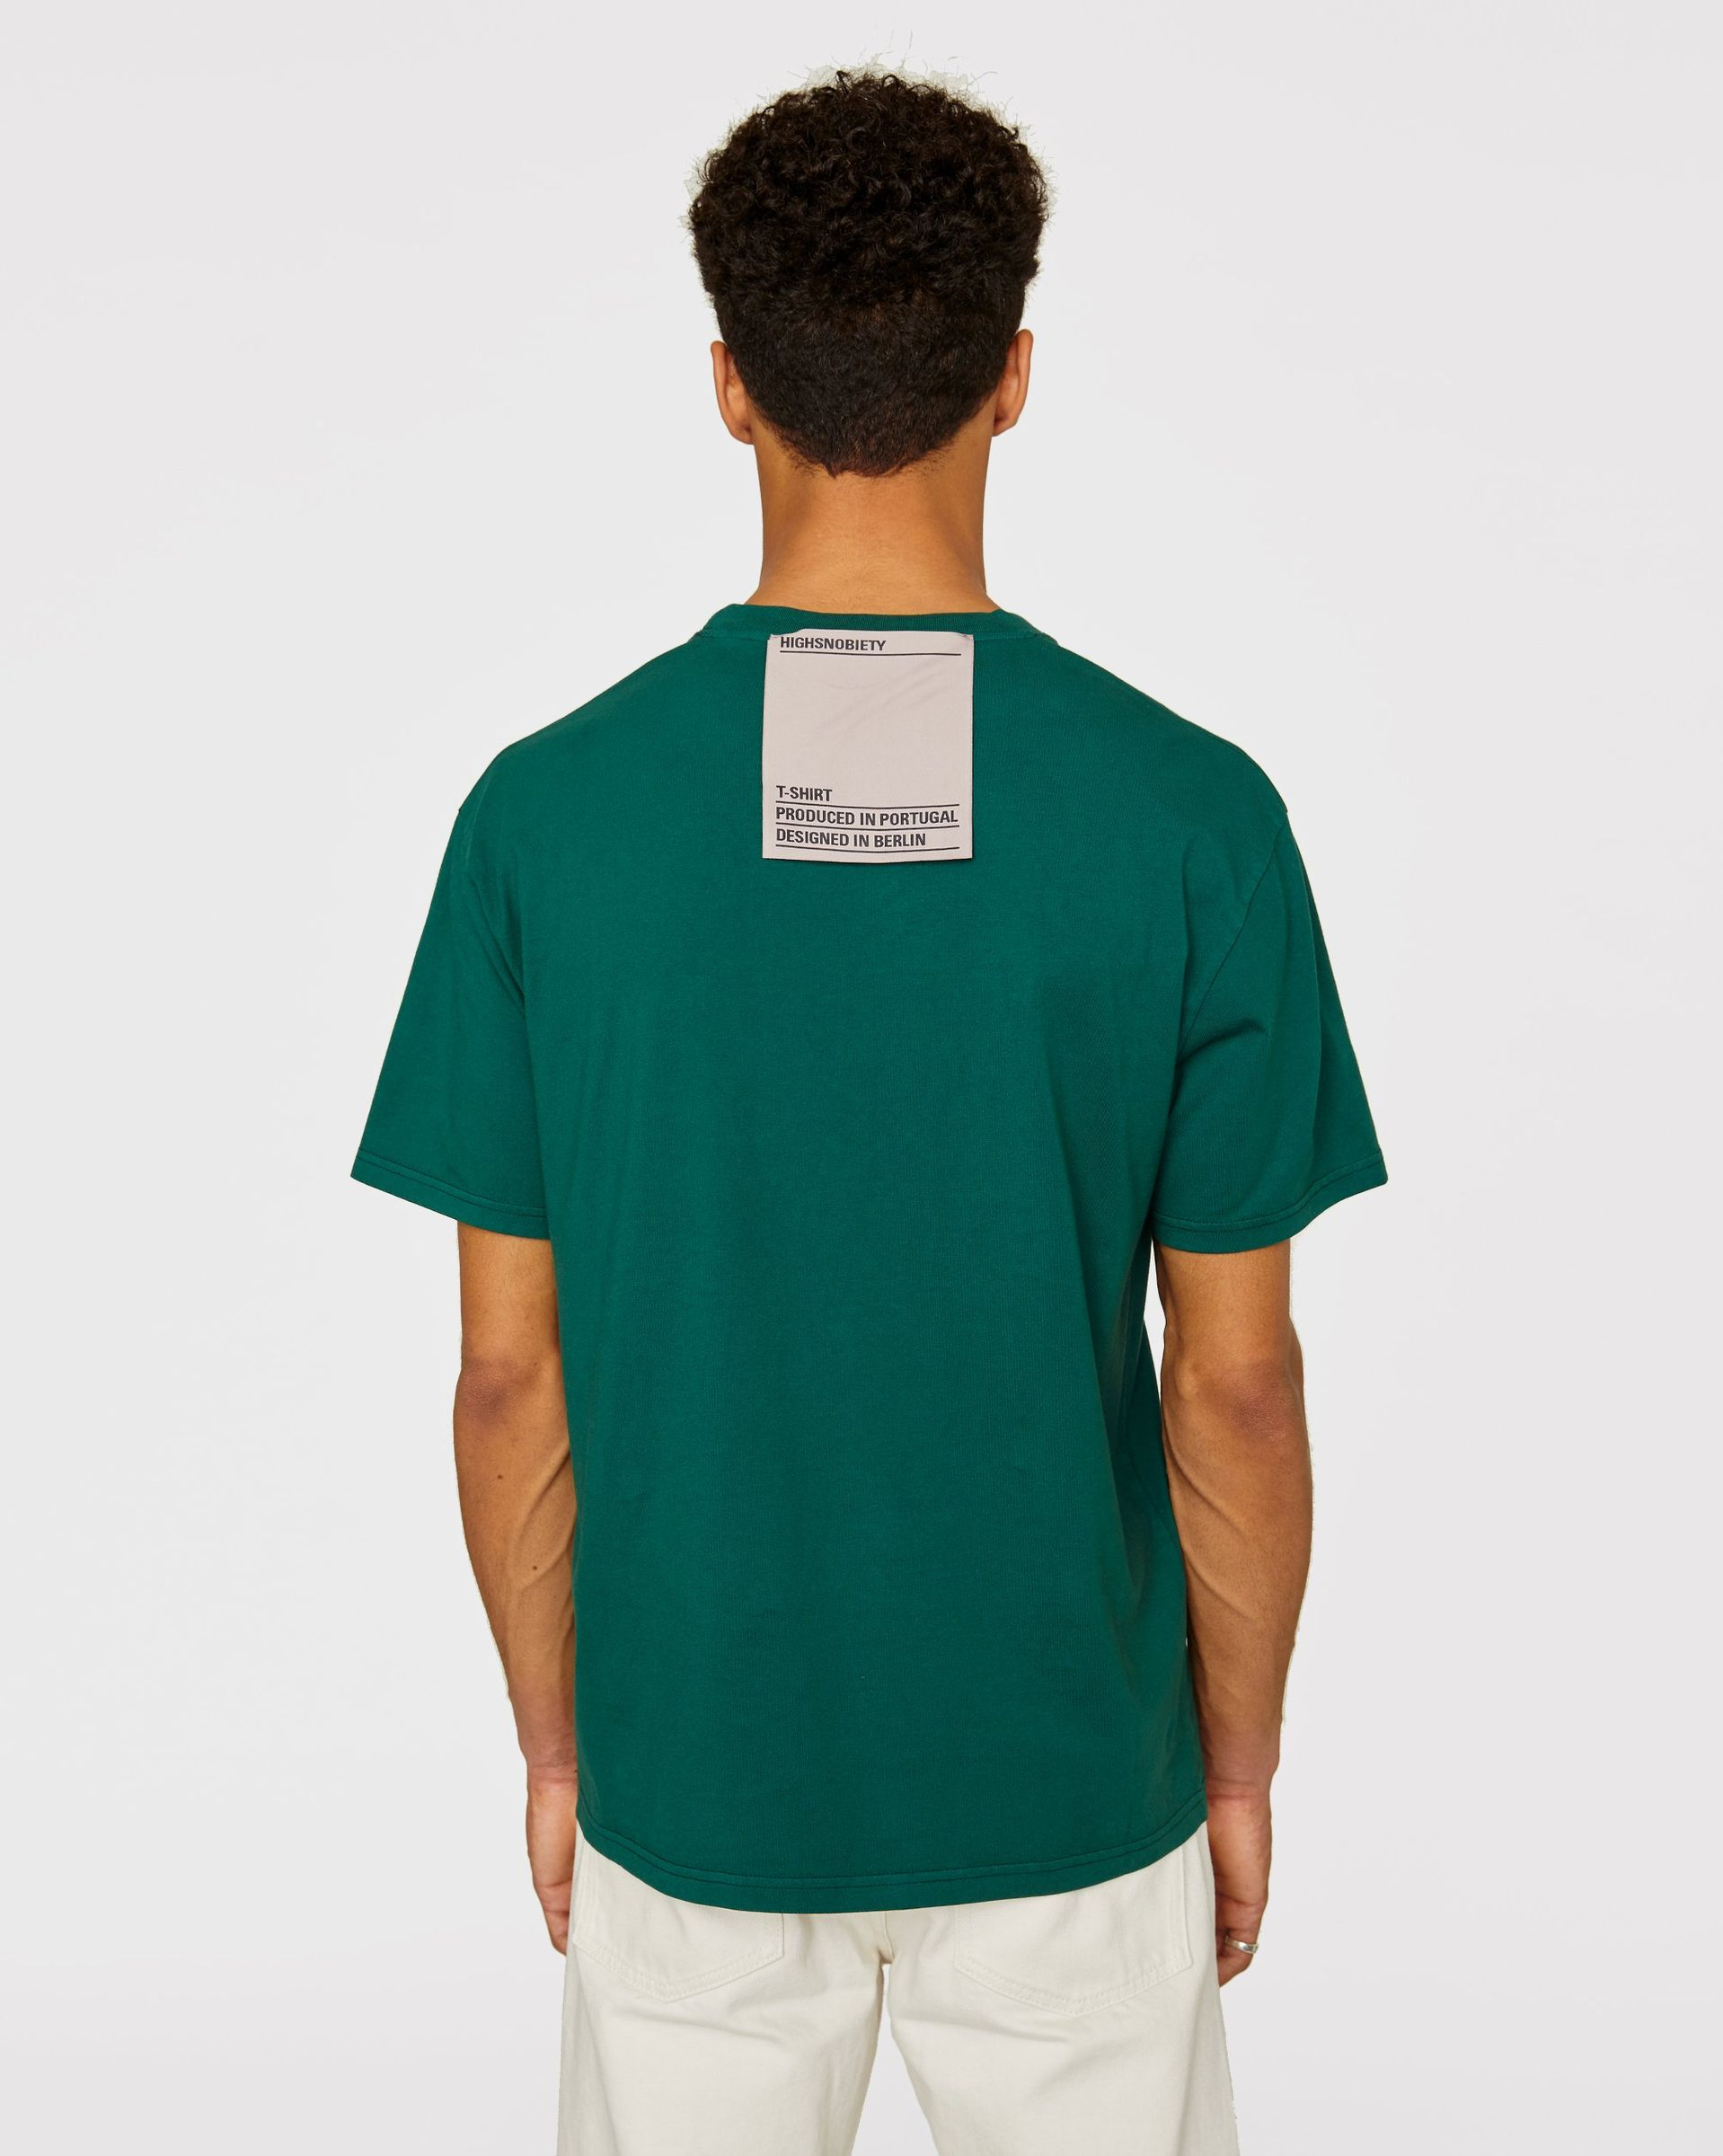 Highsnobiety Staples - T-Shirt Green - Image 3